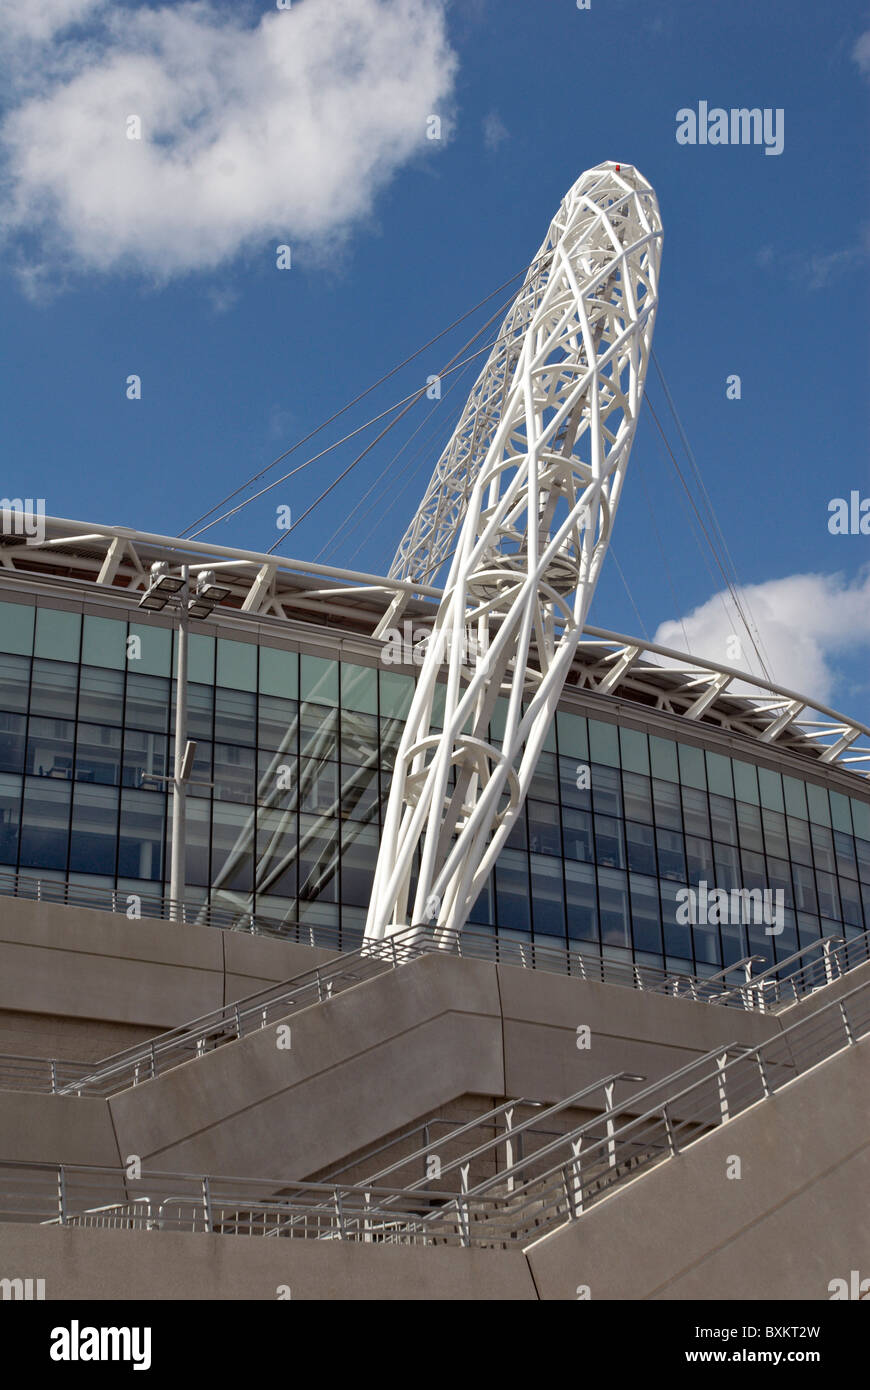 Completion of Wembley Stadium. The Wembley Stadium triumphant arch is the main focus of this £798m project. - Stock Image